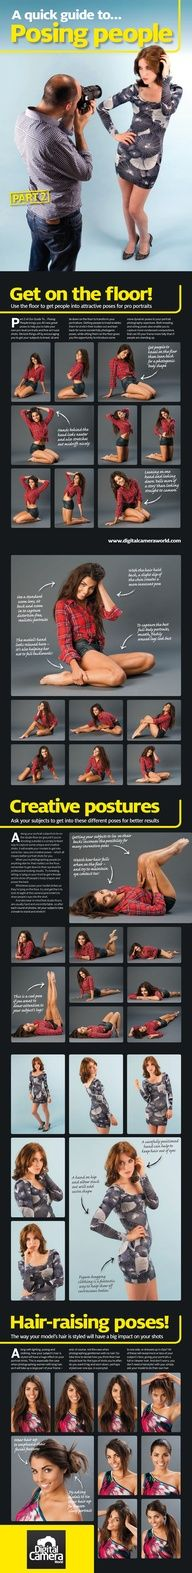 "40 more posing ideas"" data-componentType=""MODAL_PIN"